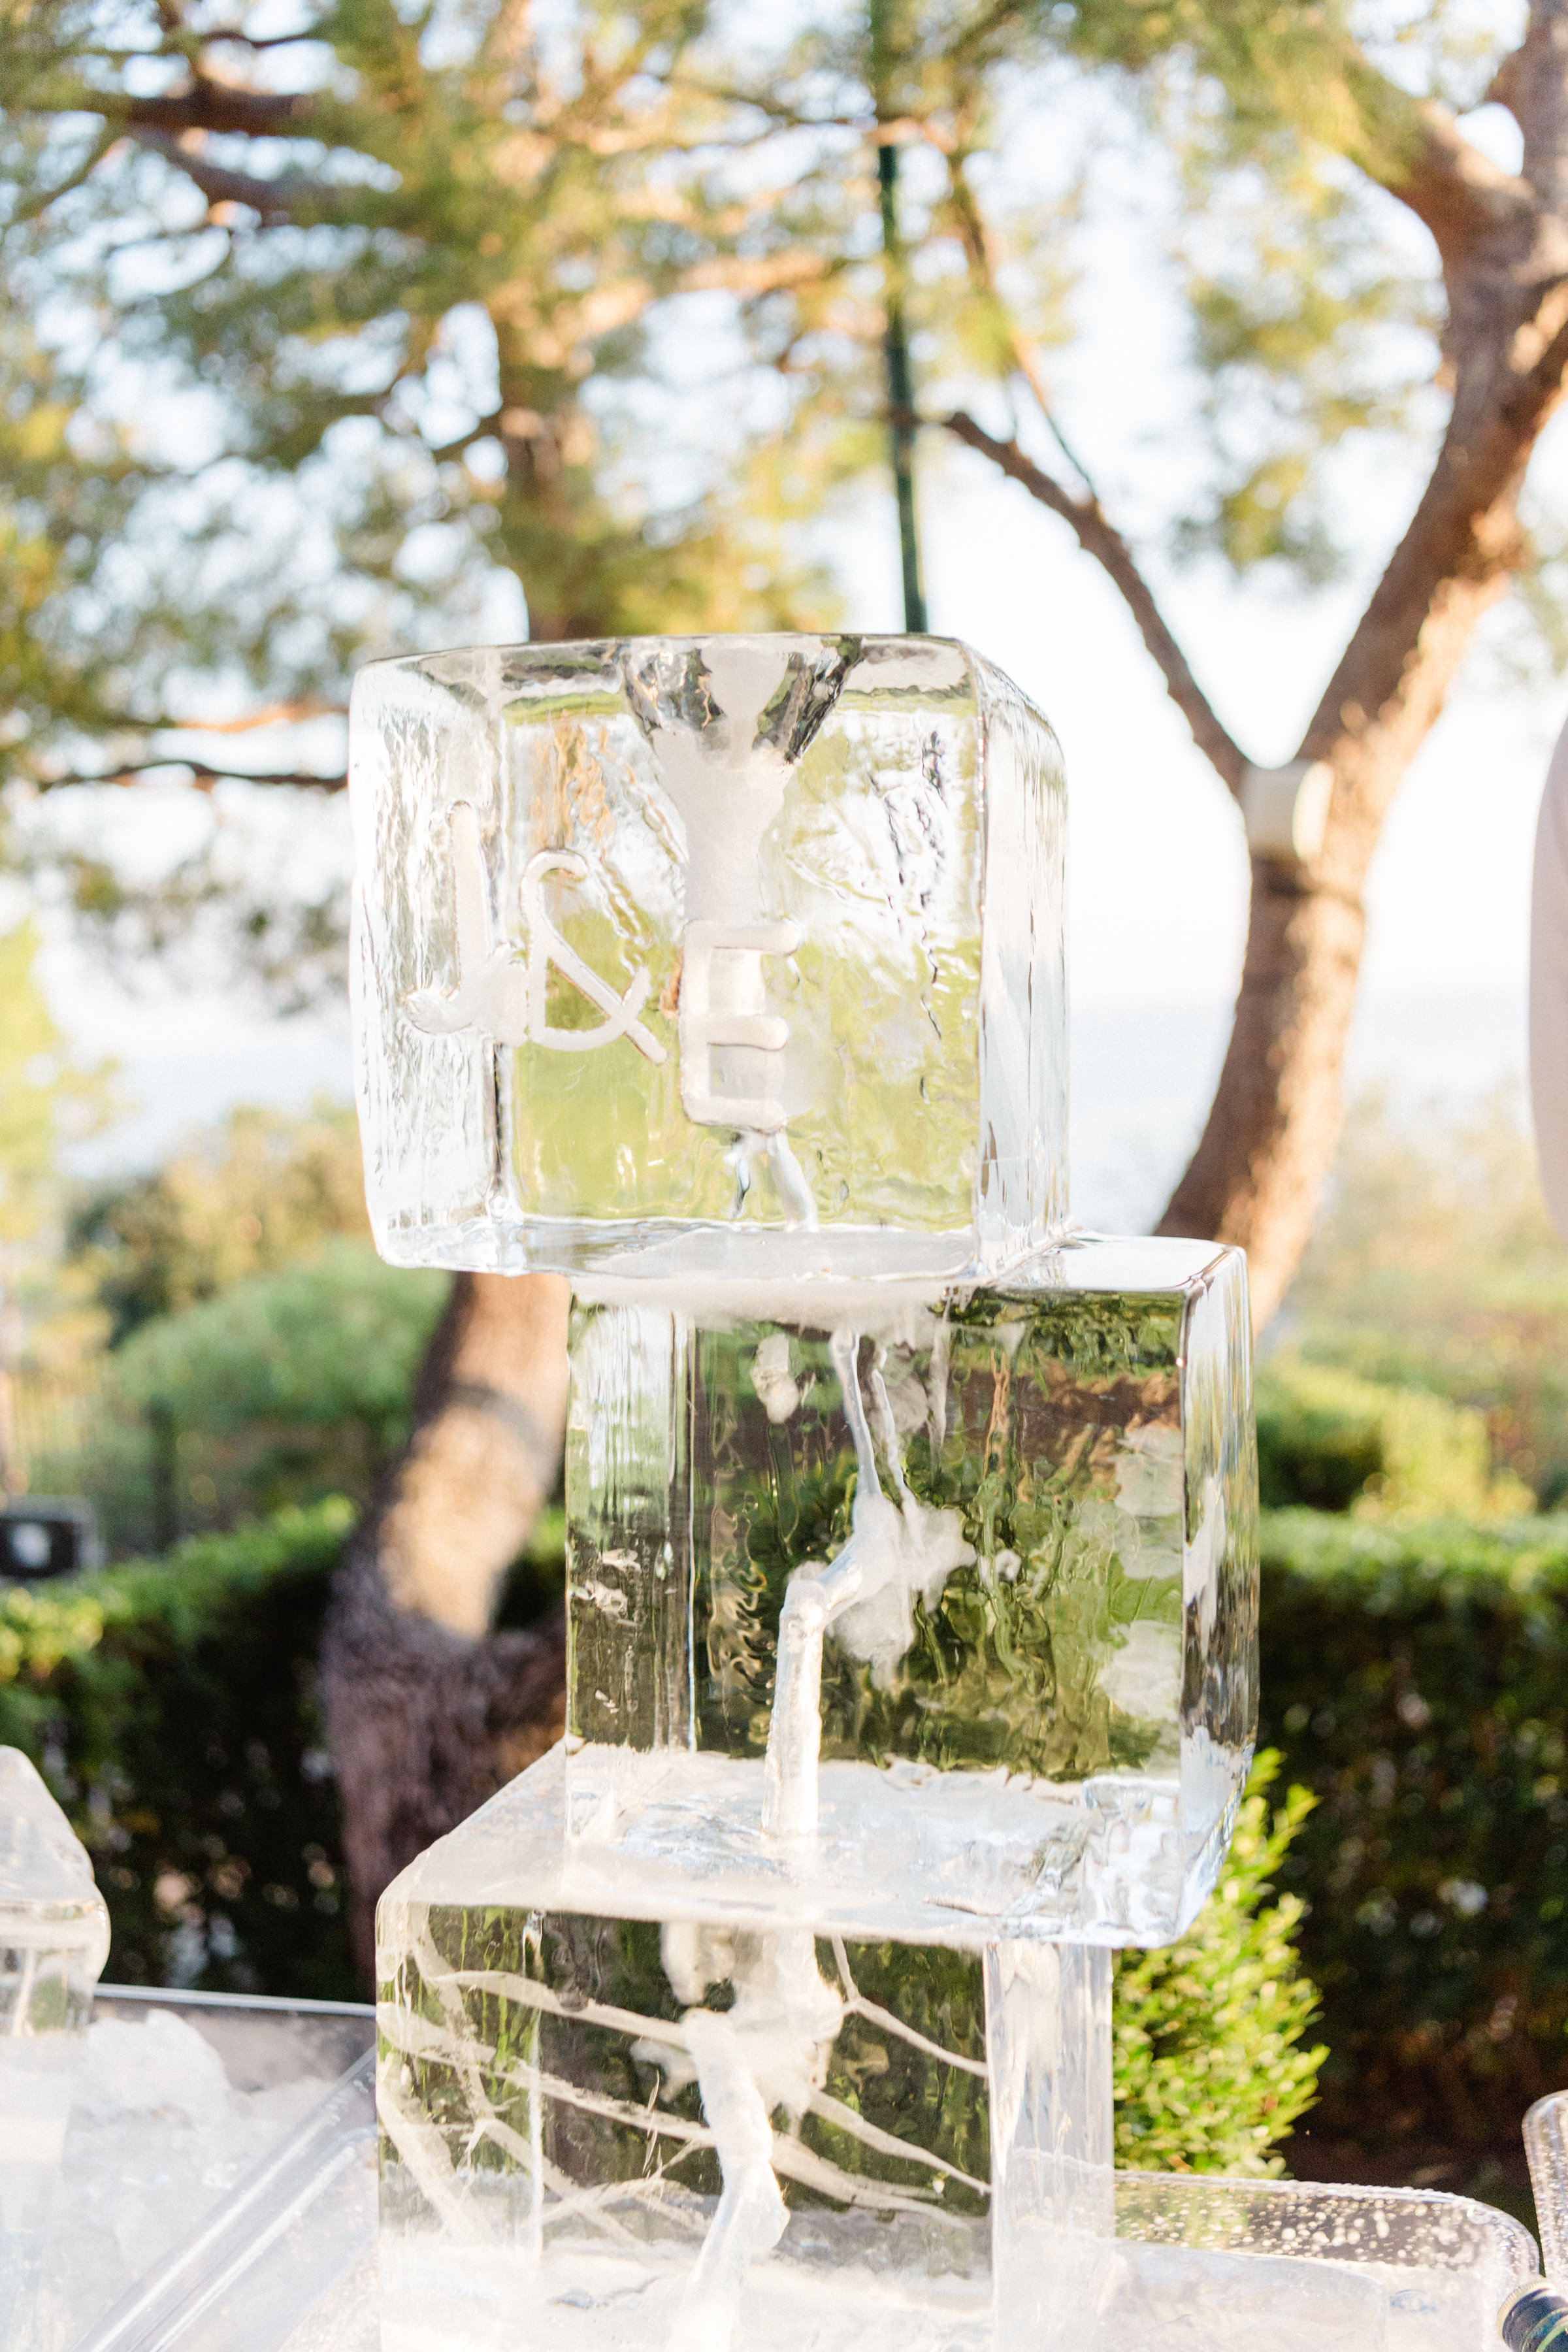 jiannina enzo wedding ice sculpture